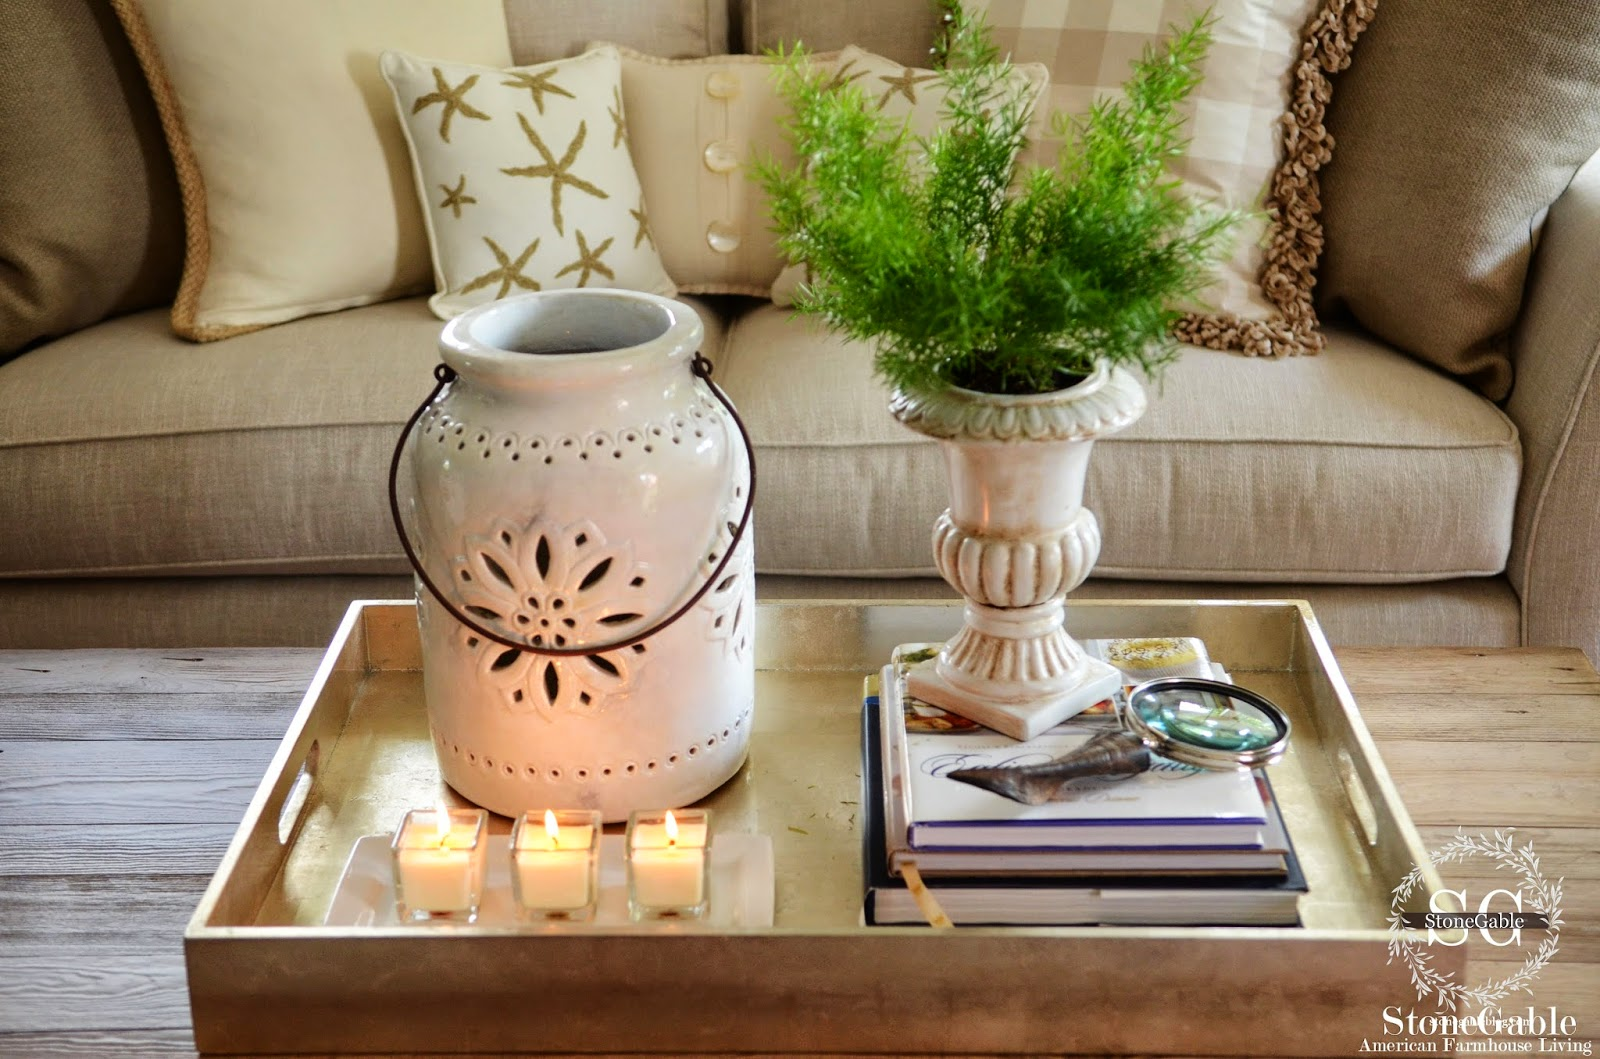 5 tips to style a coffee table like a pro stonegable. Black Bedroom Furniture Sets. Home Design Ideas